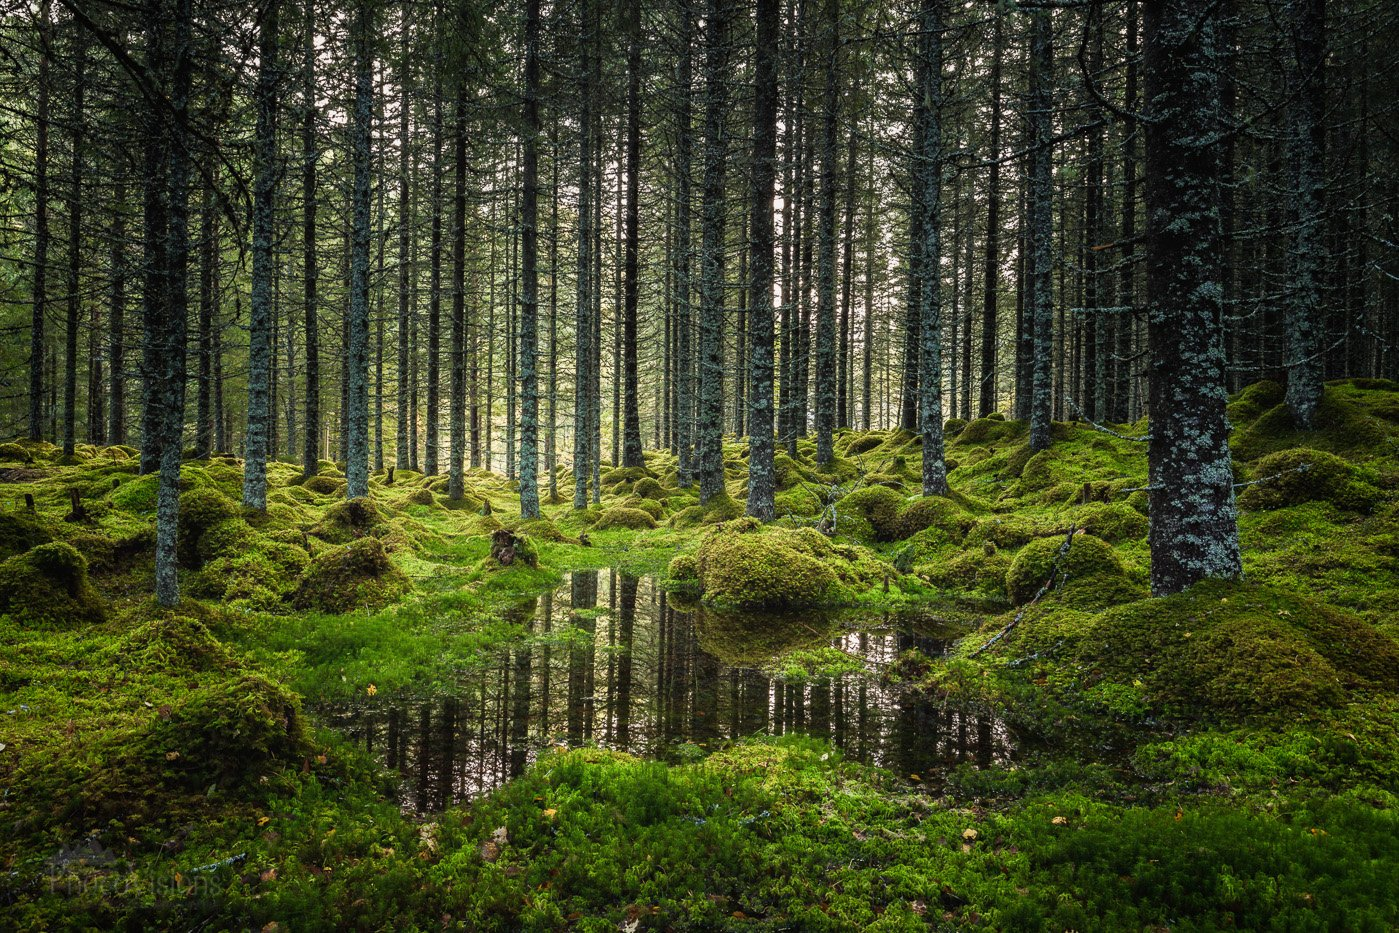 forest, trees, green, landscape, moss, mossy, reflections, woods, woodland,, Adrian Szatewicz